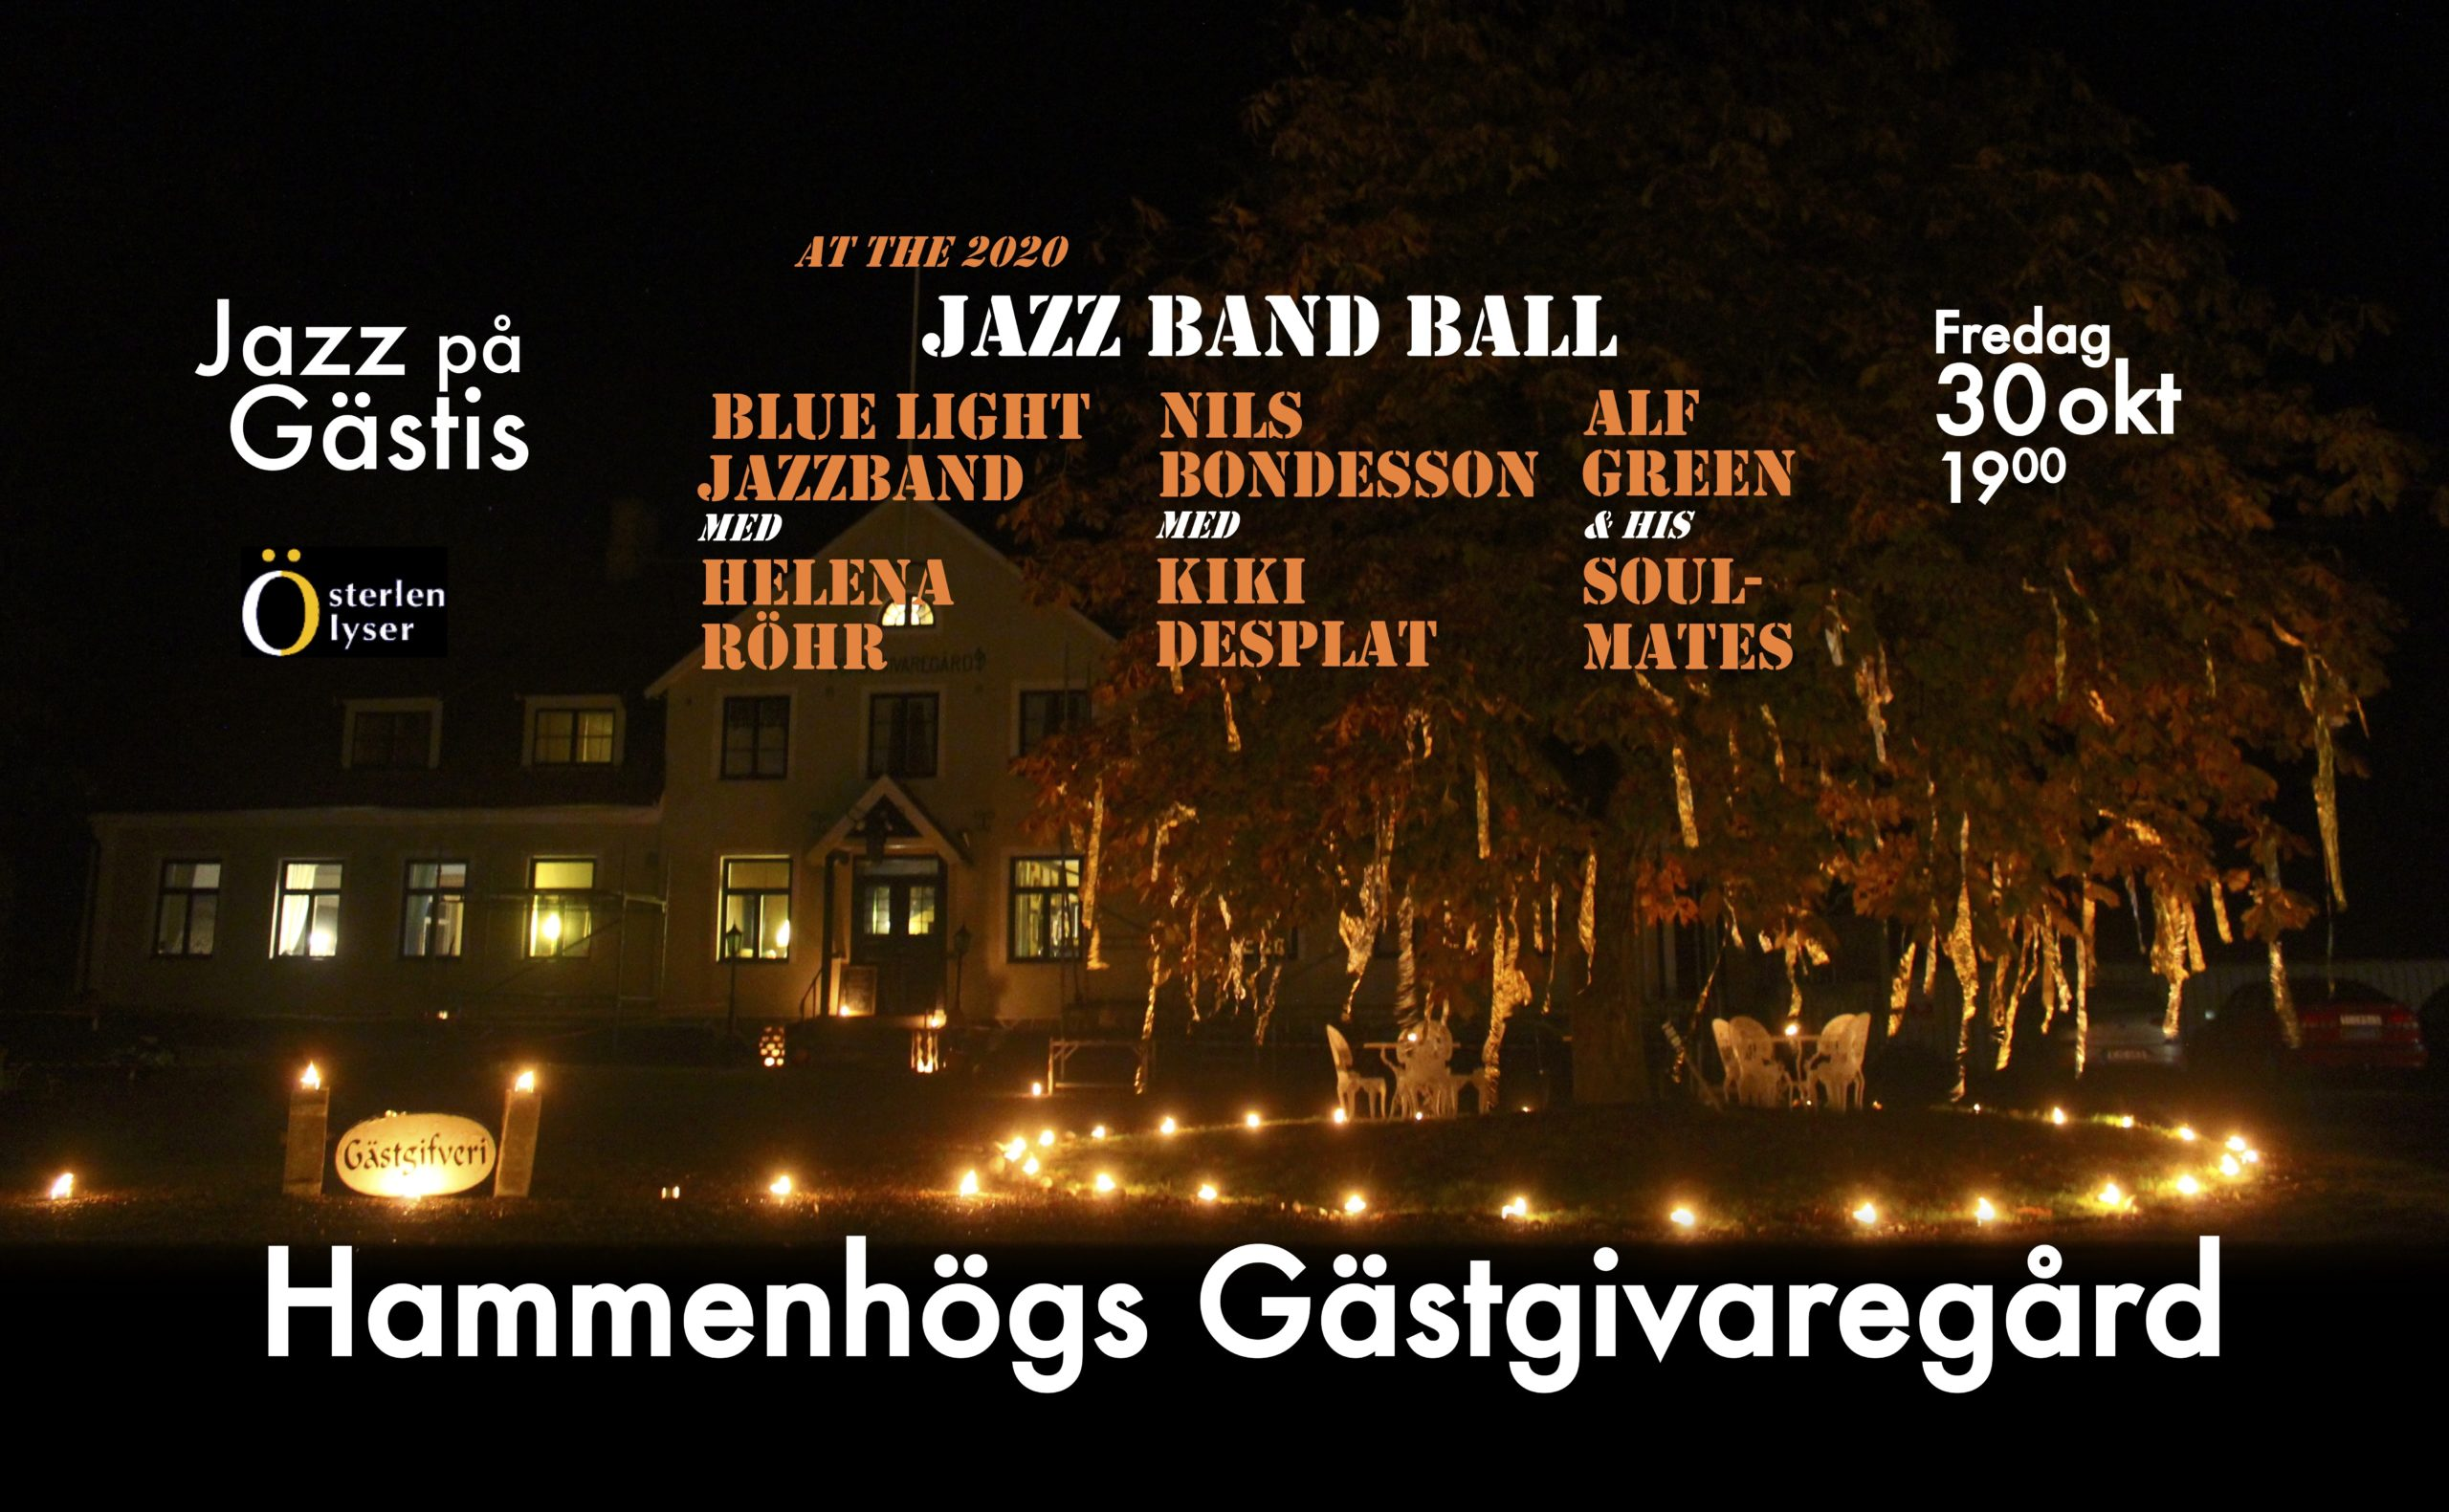 Jazz at the guest house - jazz band ball 2020